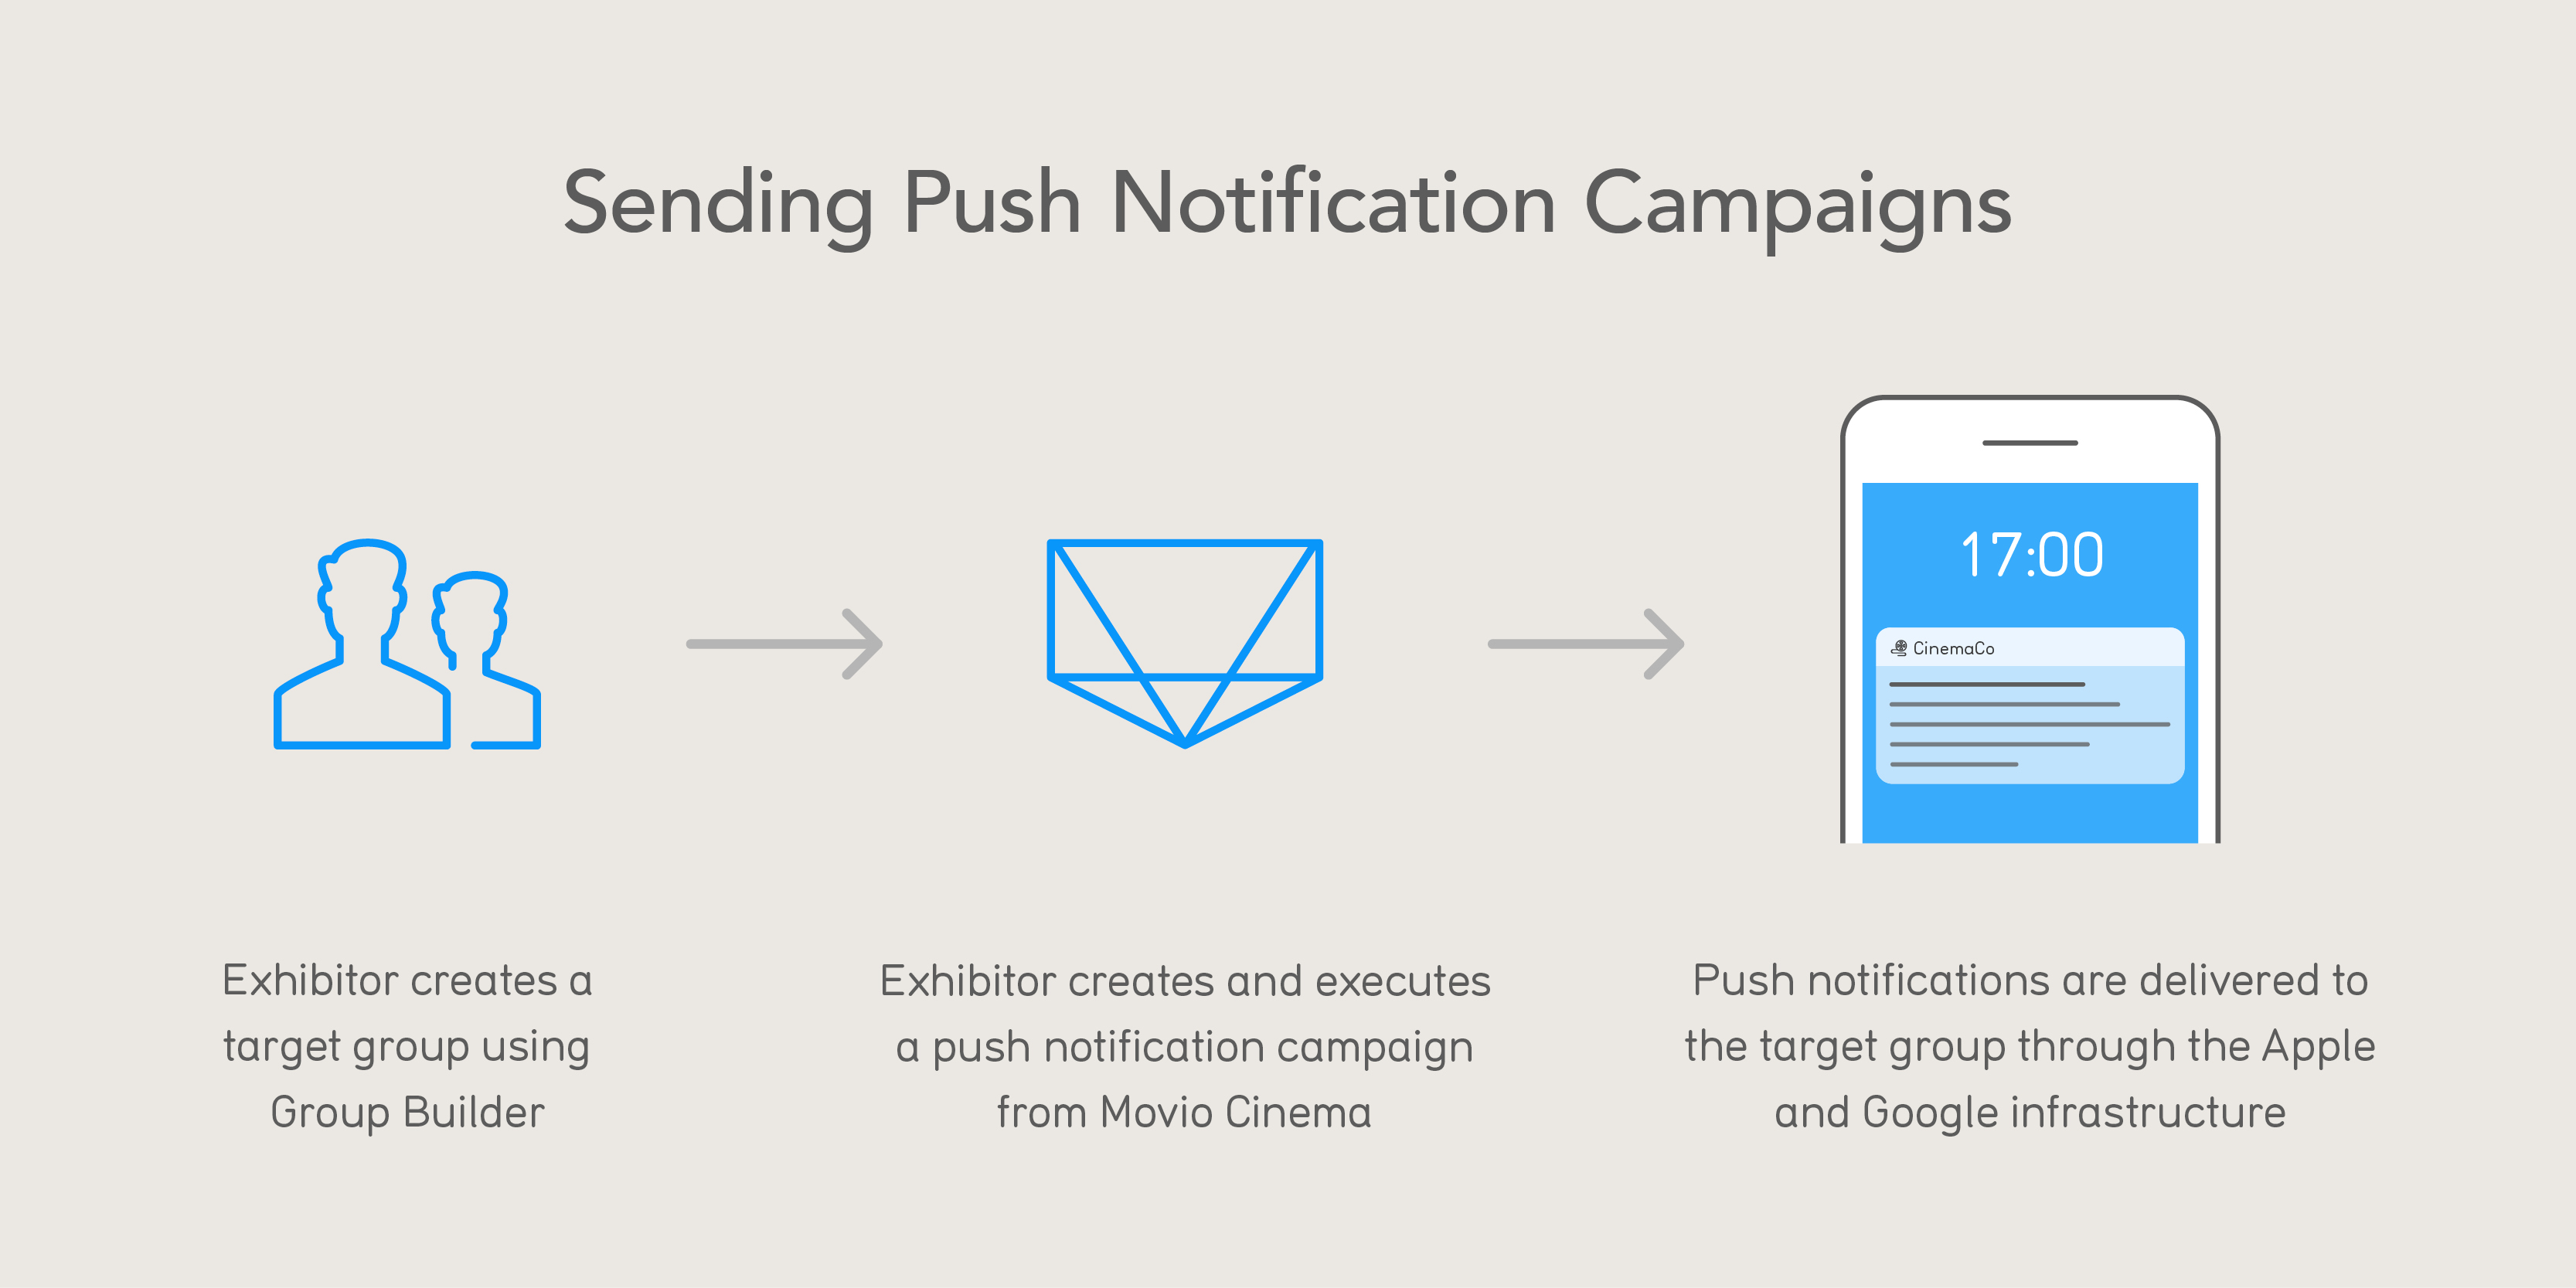 Push Notification Campaign image